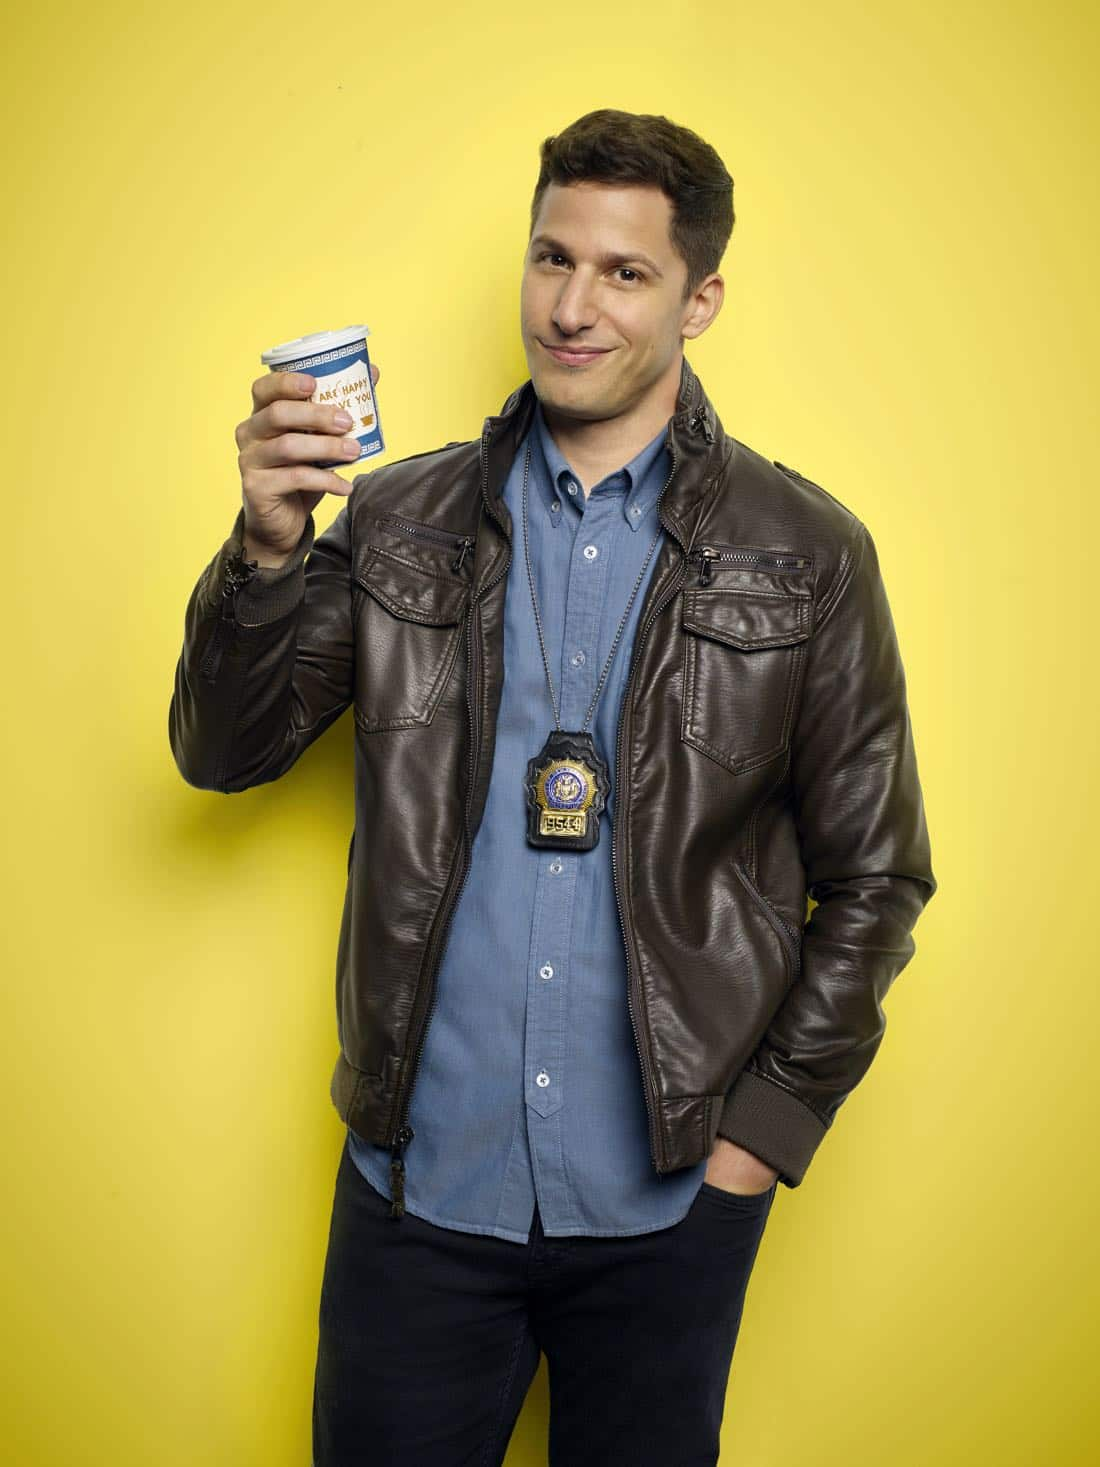 BROOKLYN NINE-NINE: Andy Samberg as Detective Jake Peralta. BROOKLYN NINE-NINE Season Five premieres Tuesday, Sept. 26 (9:30-10:00 PM ET/PT) on FOX. ©2017 Fox Broadcasting Co. CR: Robert Trachtenberg/FOX